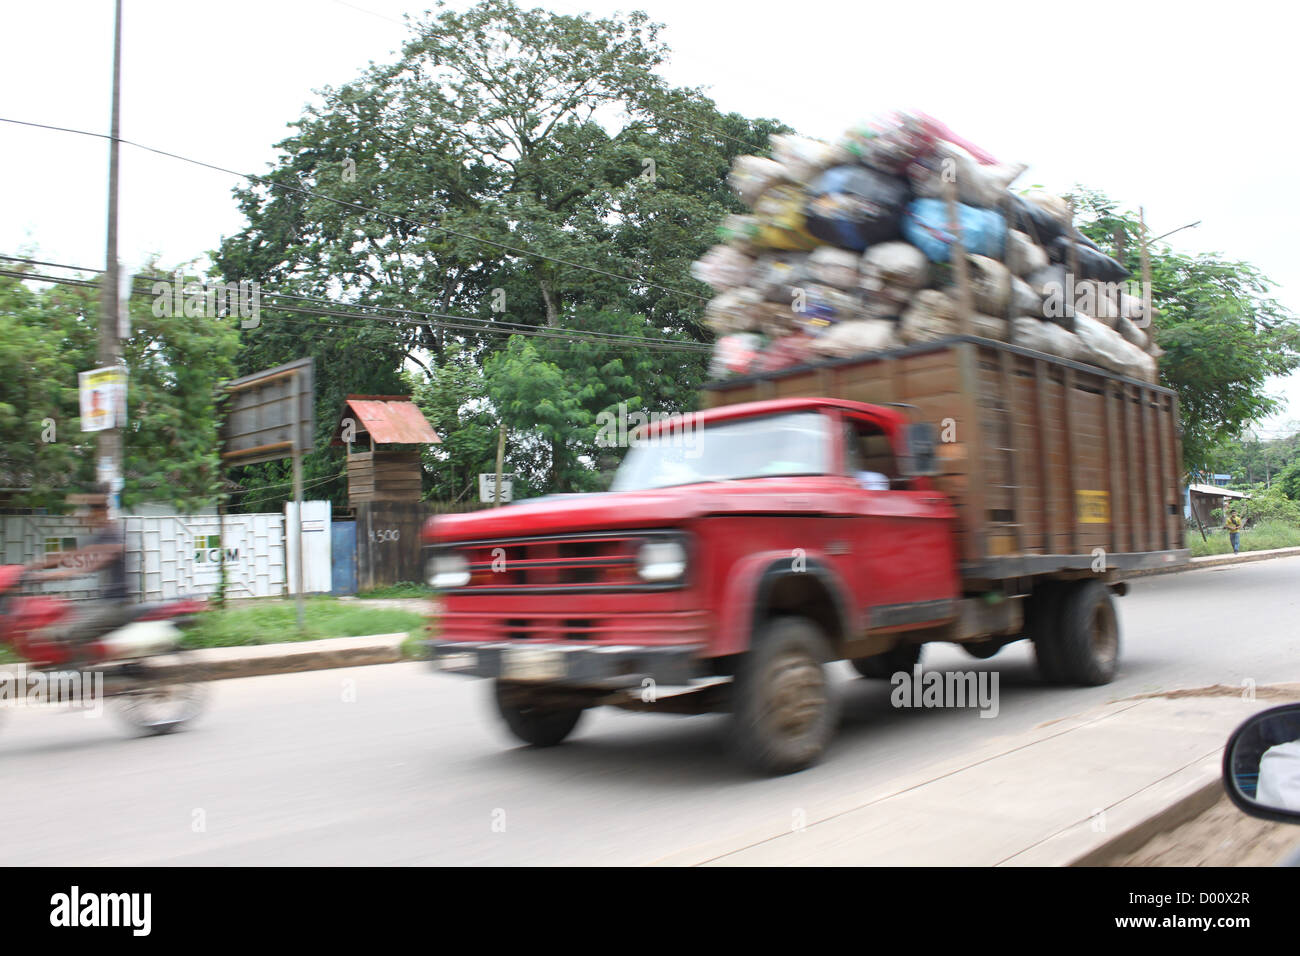 red truck transporting goods in developing country - Stock Image